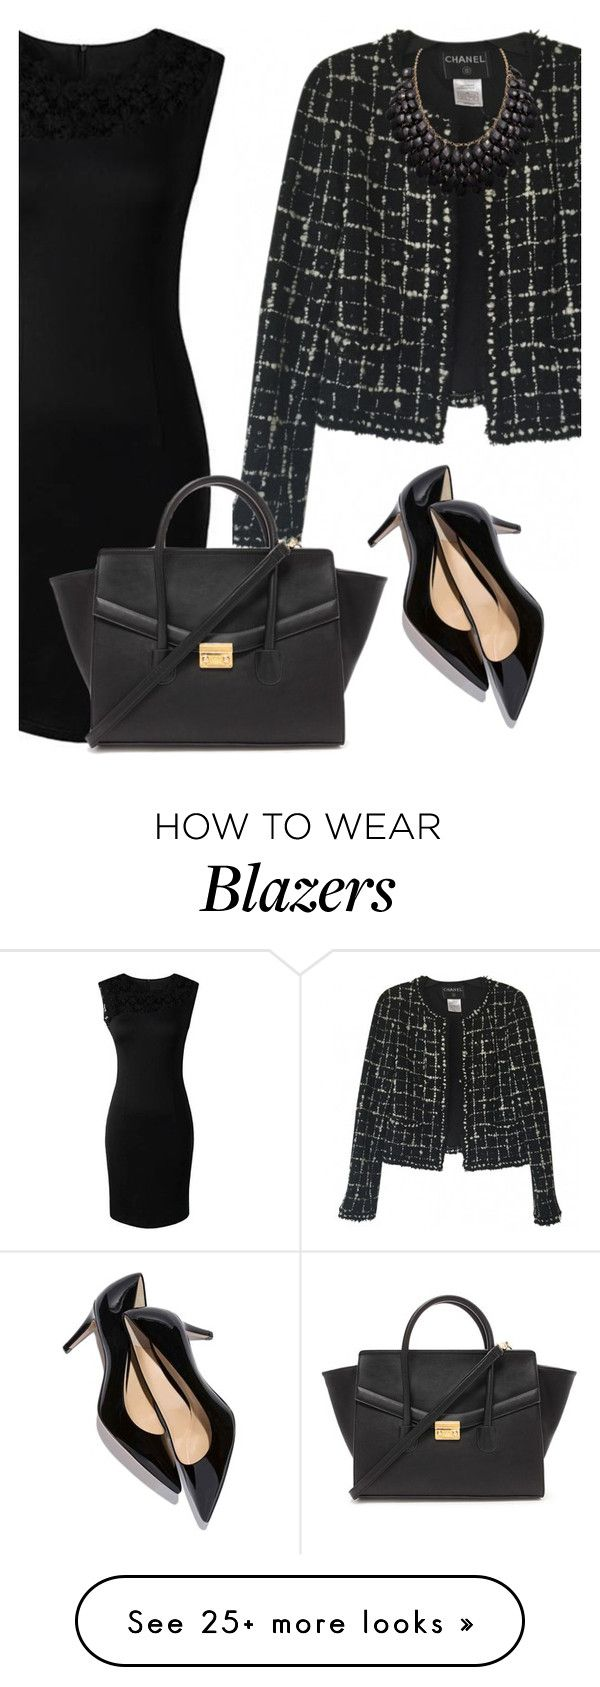 """""""business look - inspiration"""" by monika1555 on Polyvore featuring Chanel, Forever 21, women's clothing, women, female, woman, misses, juniors, business and inspiration"""